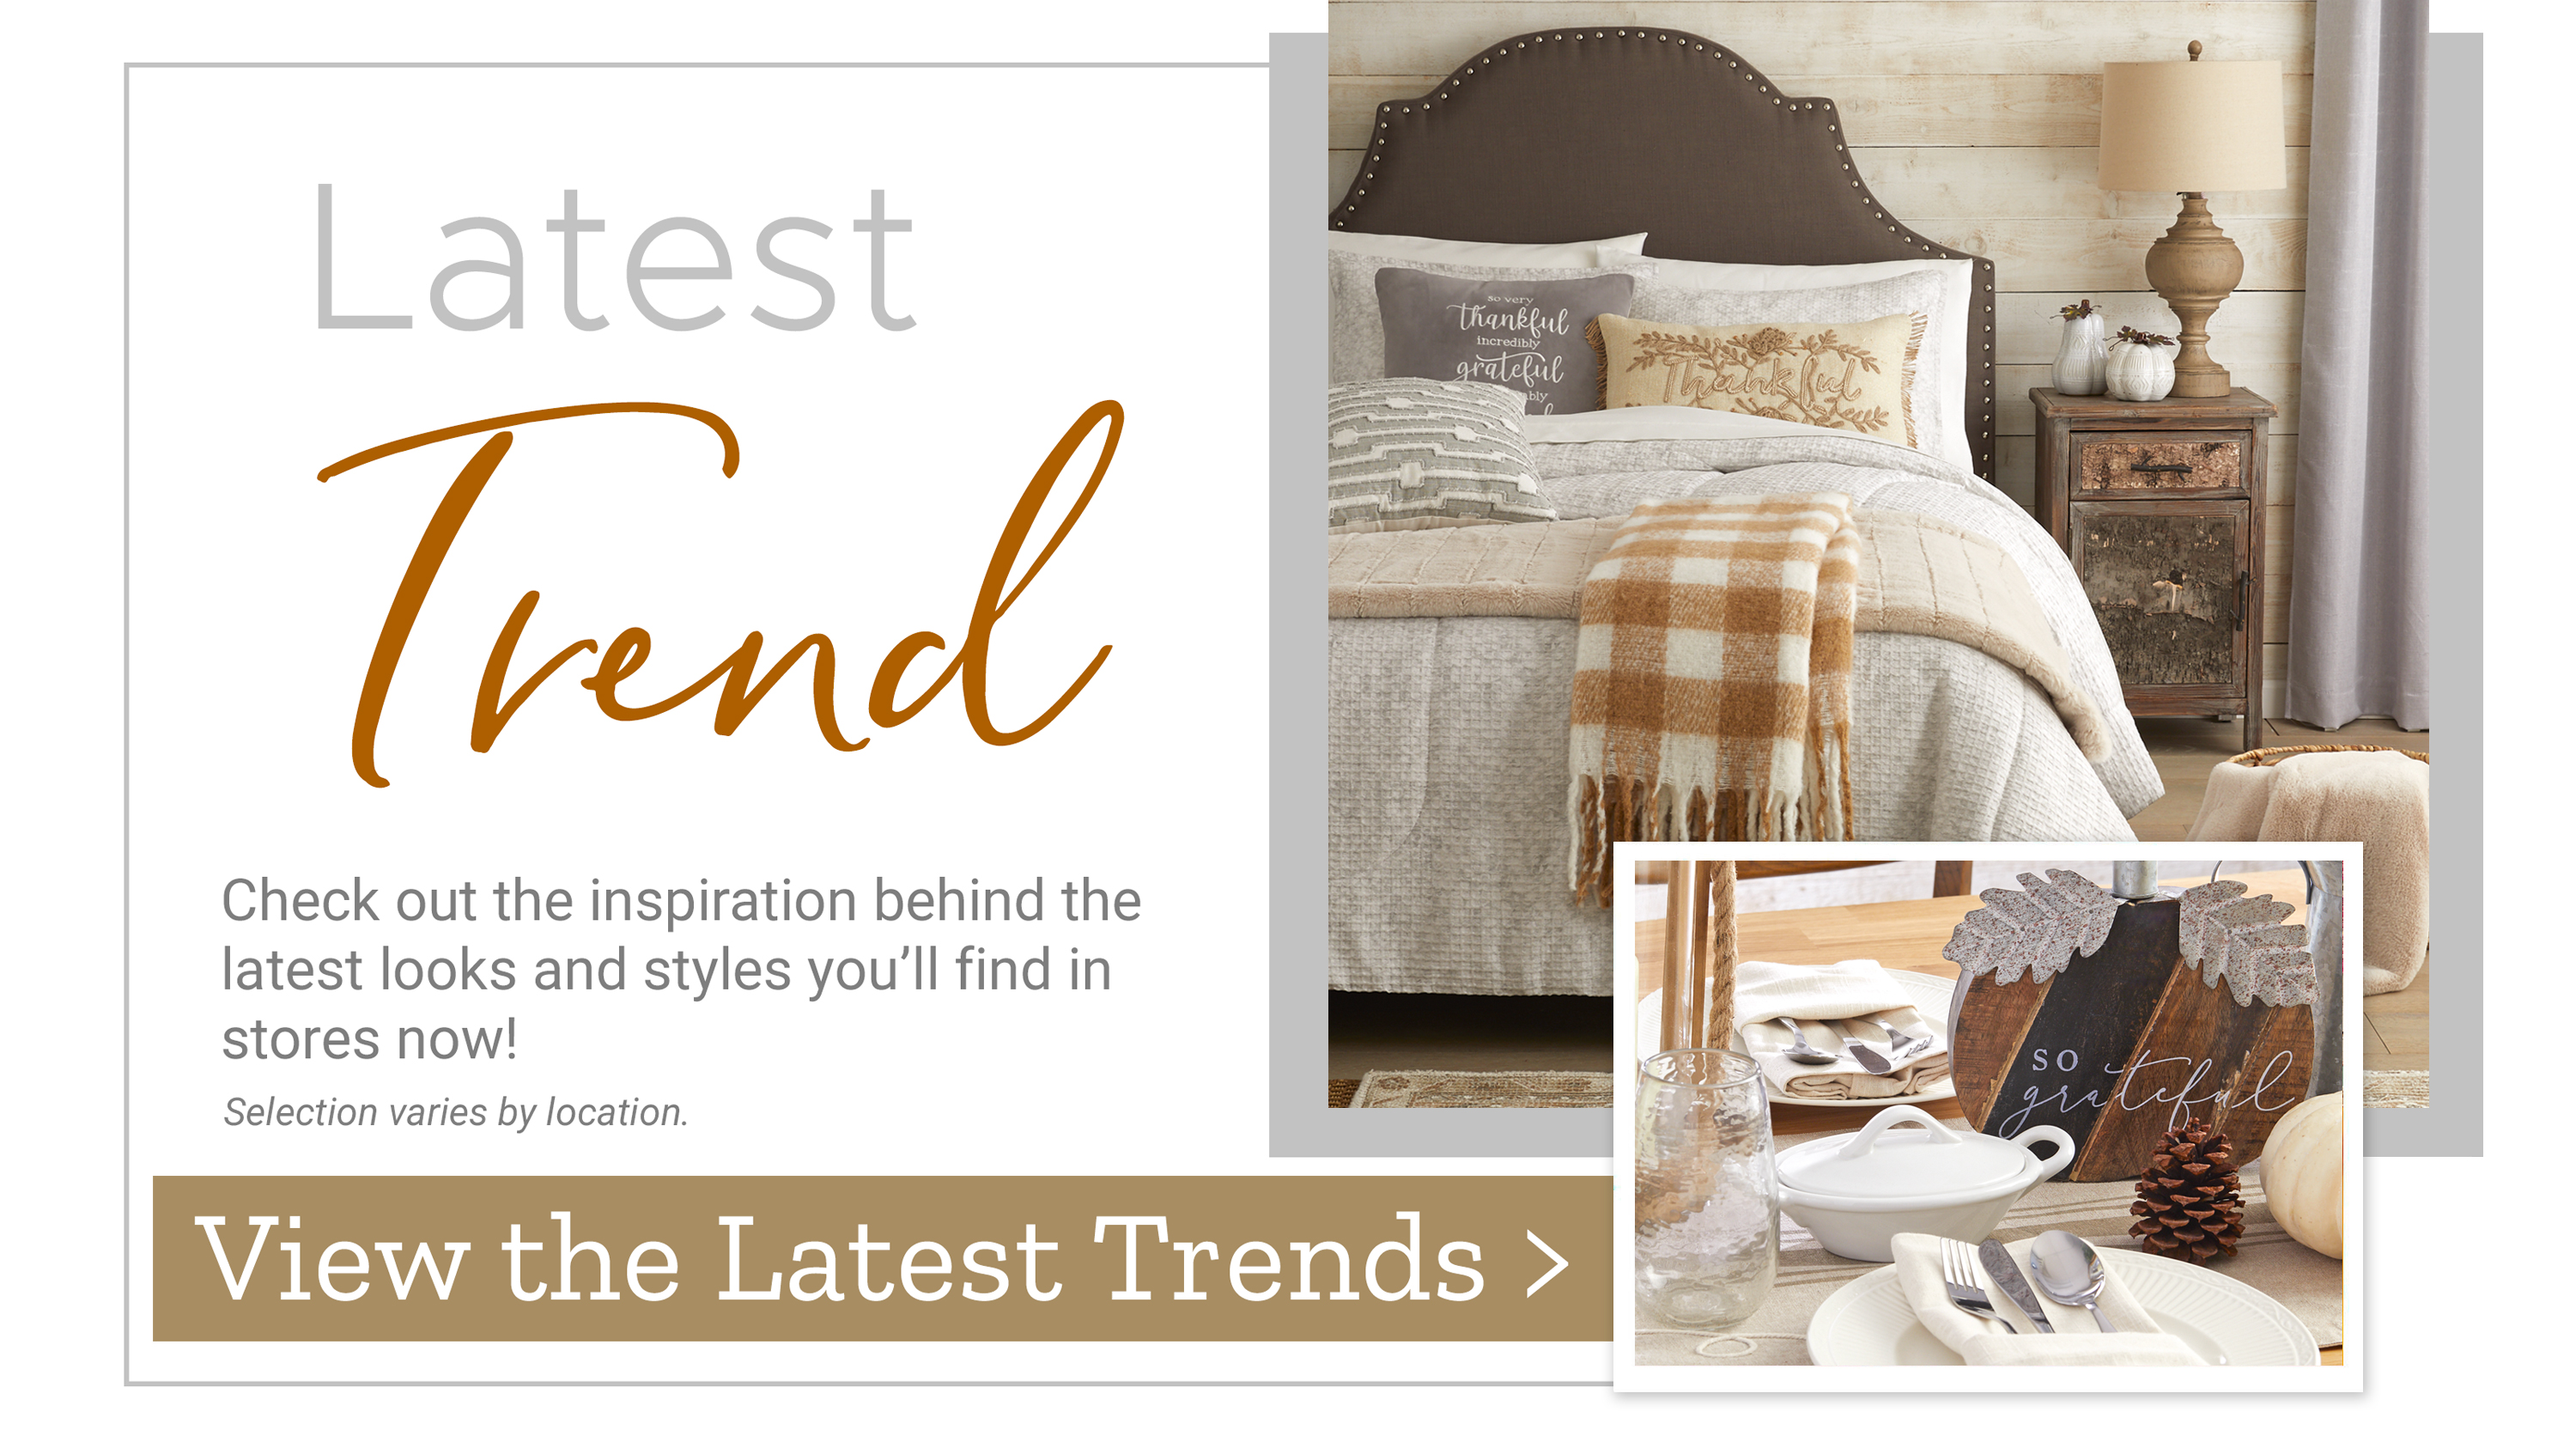 Latest Trend - Check out the inspiration behind the latest looks and styles you'll find in stores now!